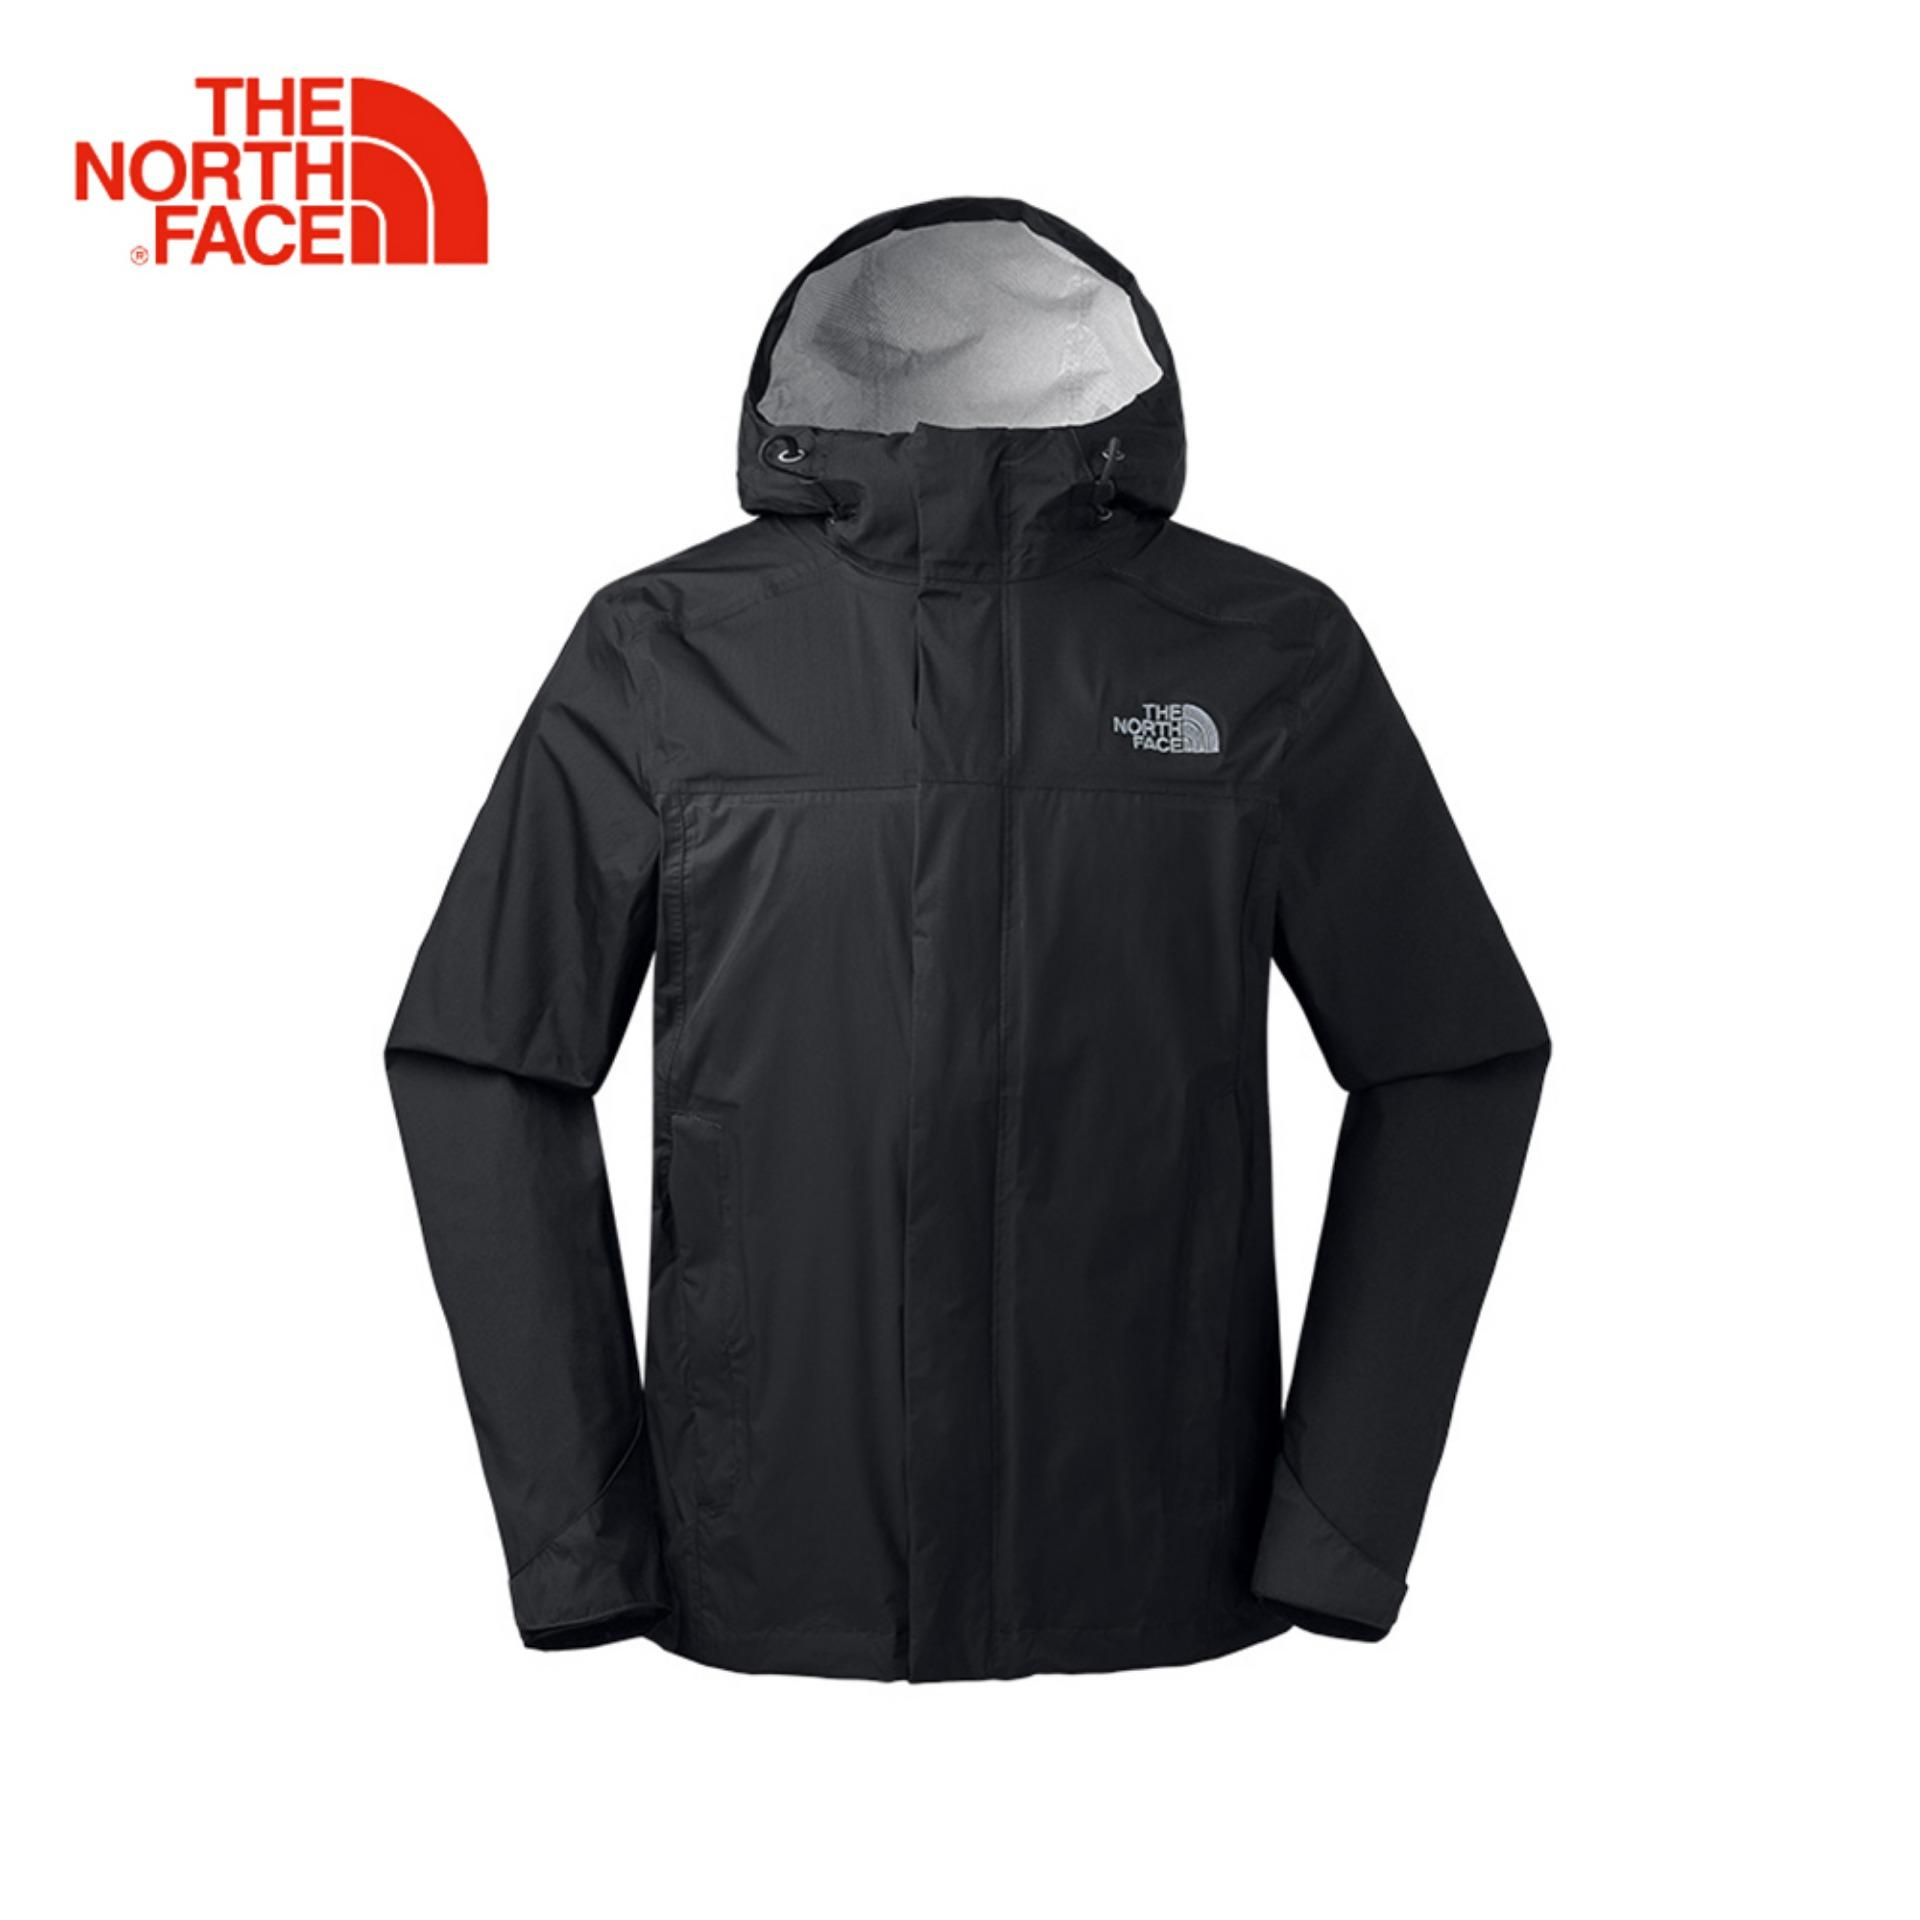 6bce80eb0389 The North Face Philippines  The North Face price list - Laptop ...